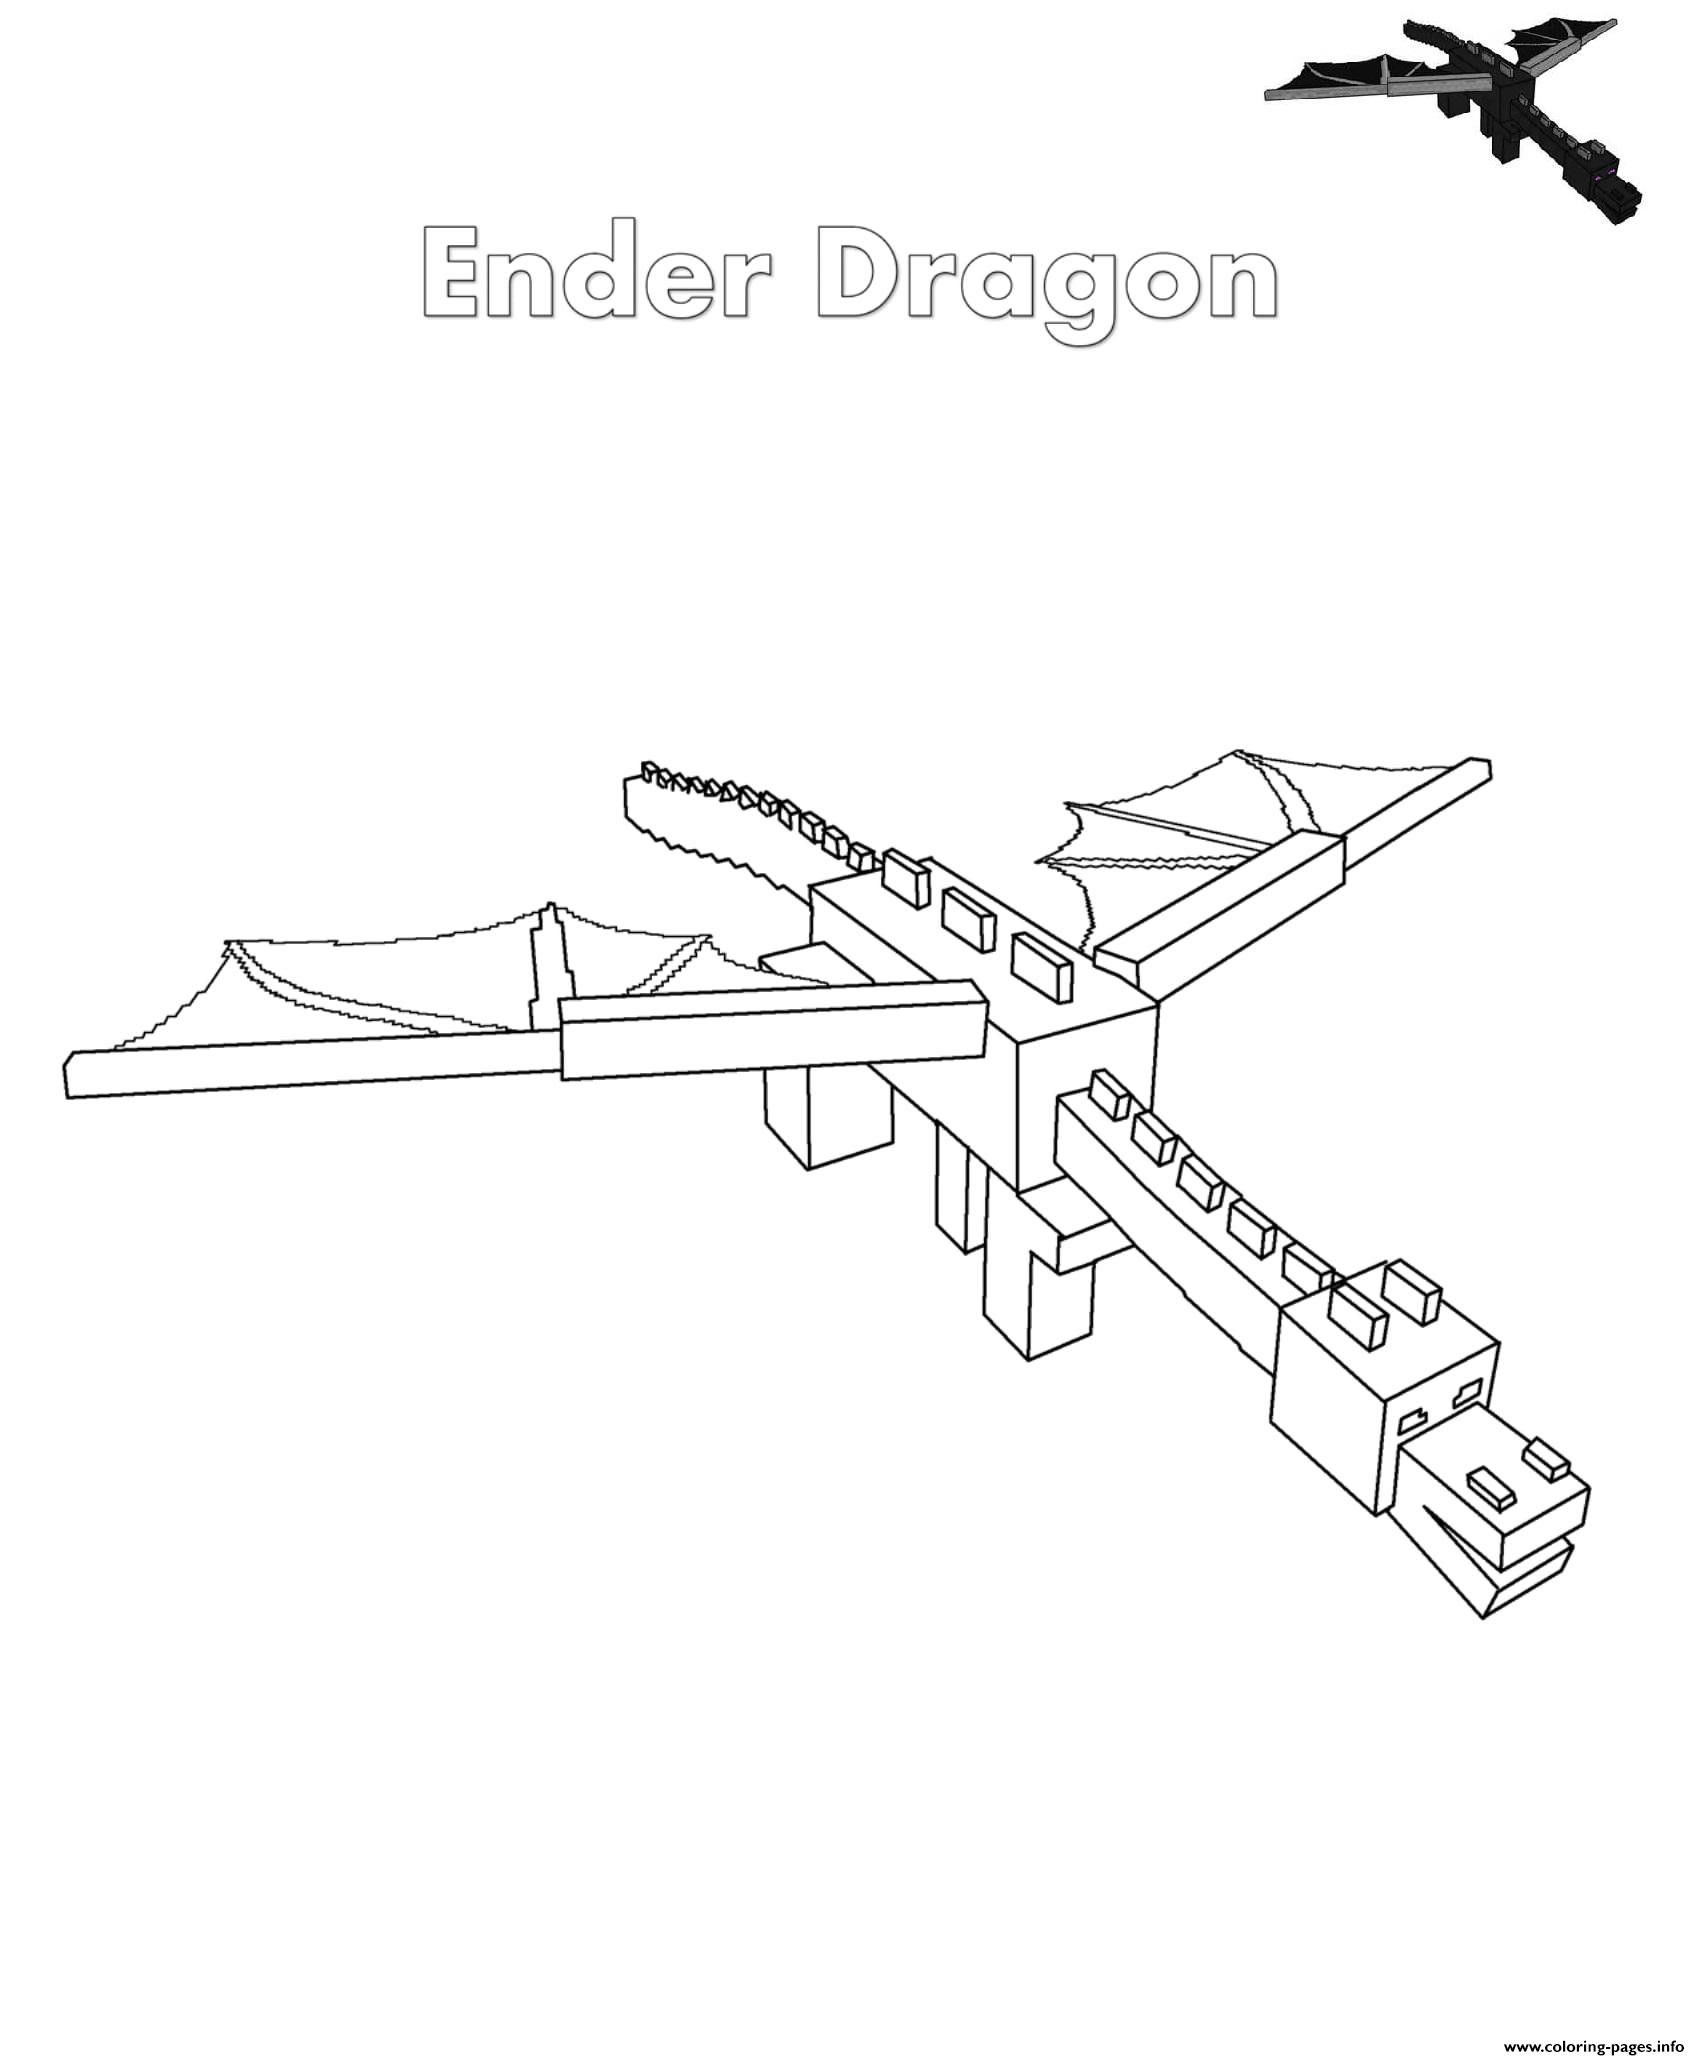 minecraft dragon coloring pages ender dragon coloring page youngandtaecom in 2020 dragon pages coloring minecraft